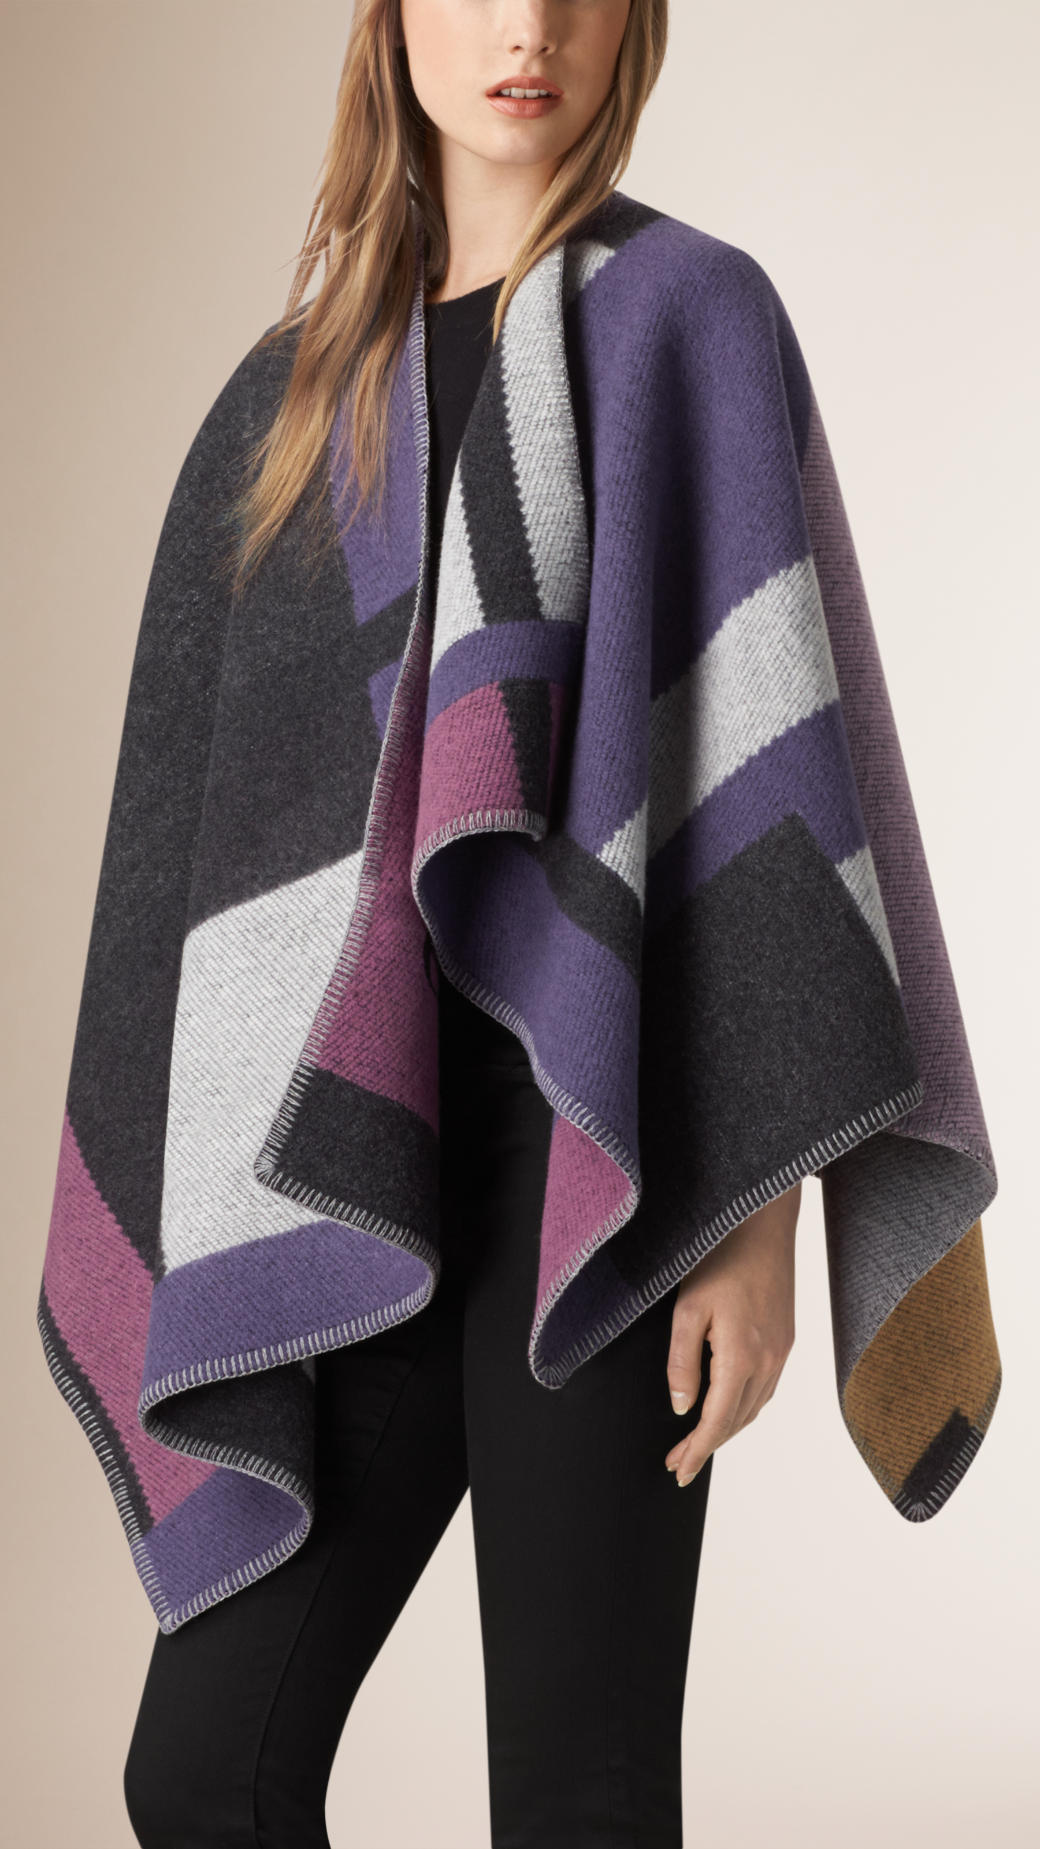 burberry-mauve-pink-purple-cape-blanket-poncho